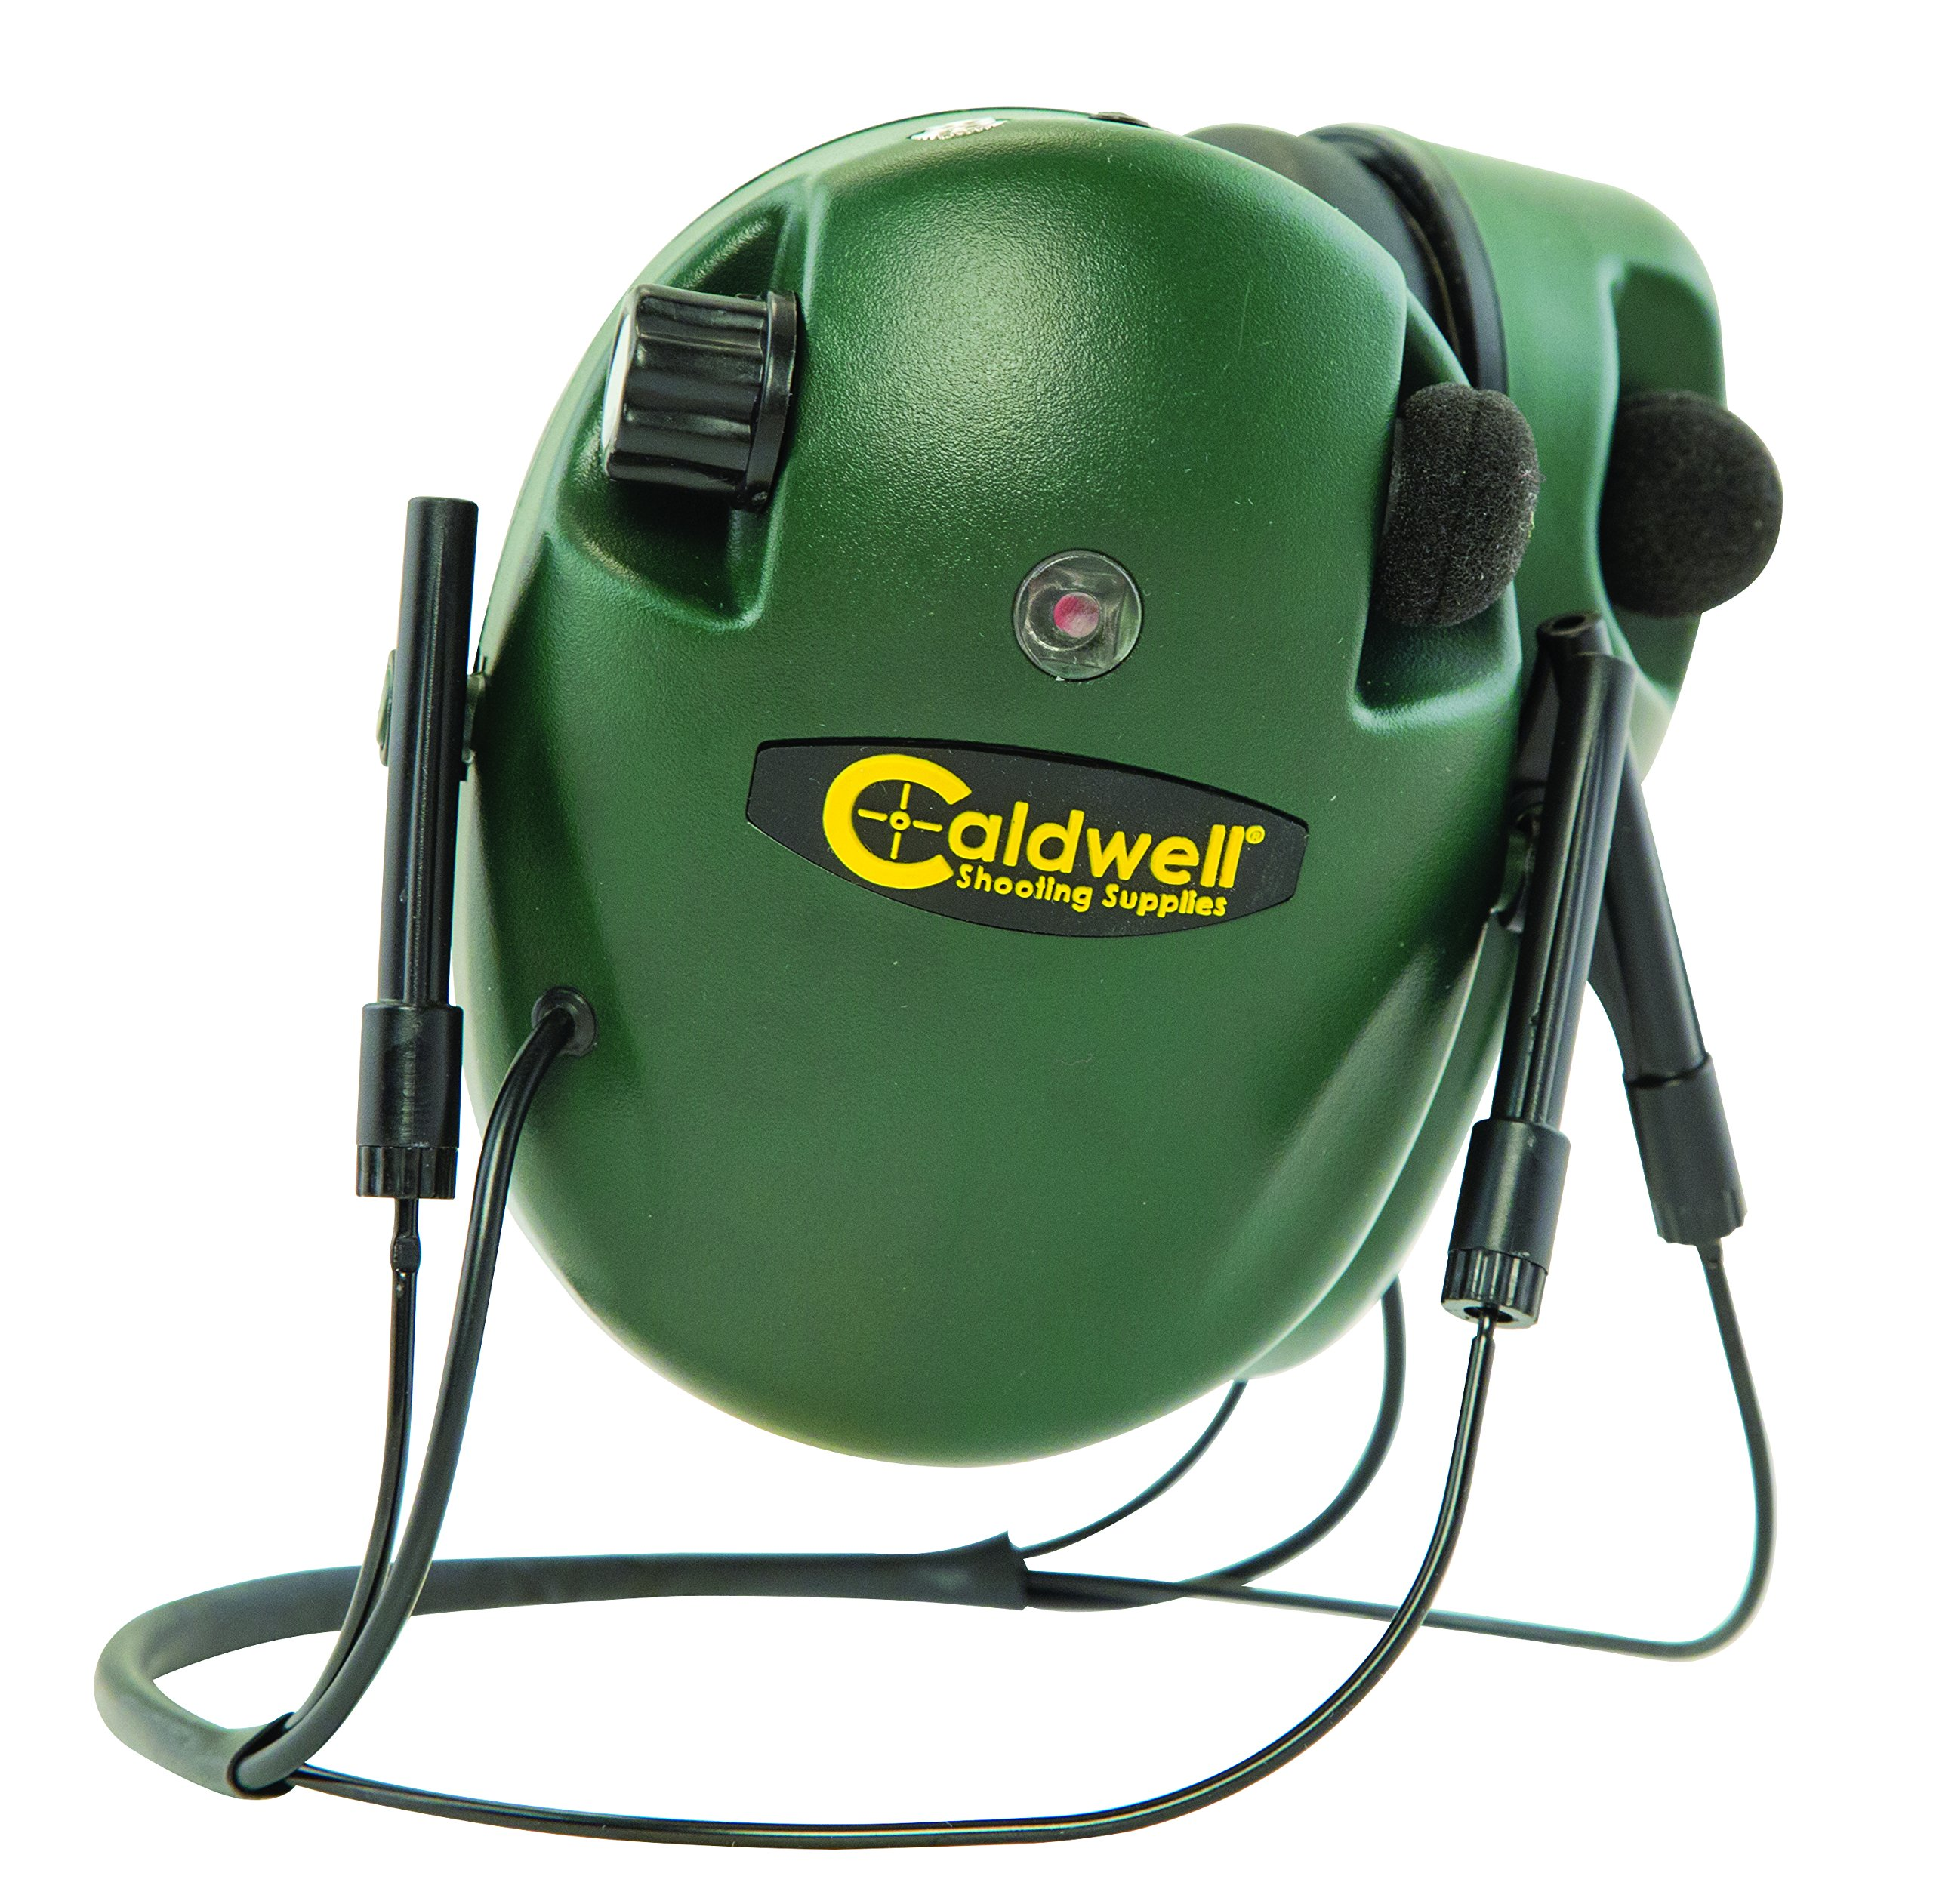 Caldwell E-Max Behind the Head (BTH) Electronic 20 NRR Hearing Protection with Sound Amplification and Adjustable Earmuffs for Shooting, Hunting and Range by Caldwell